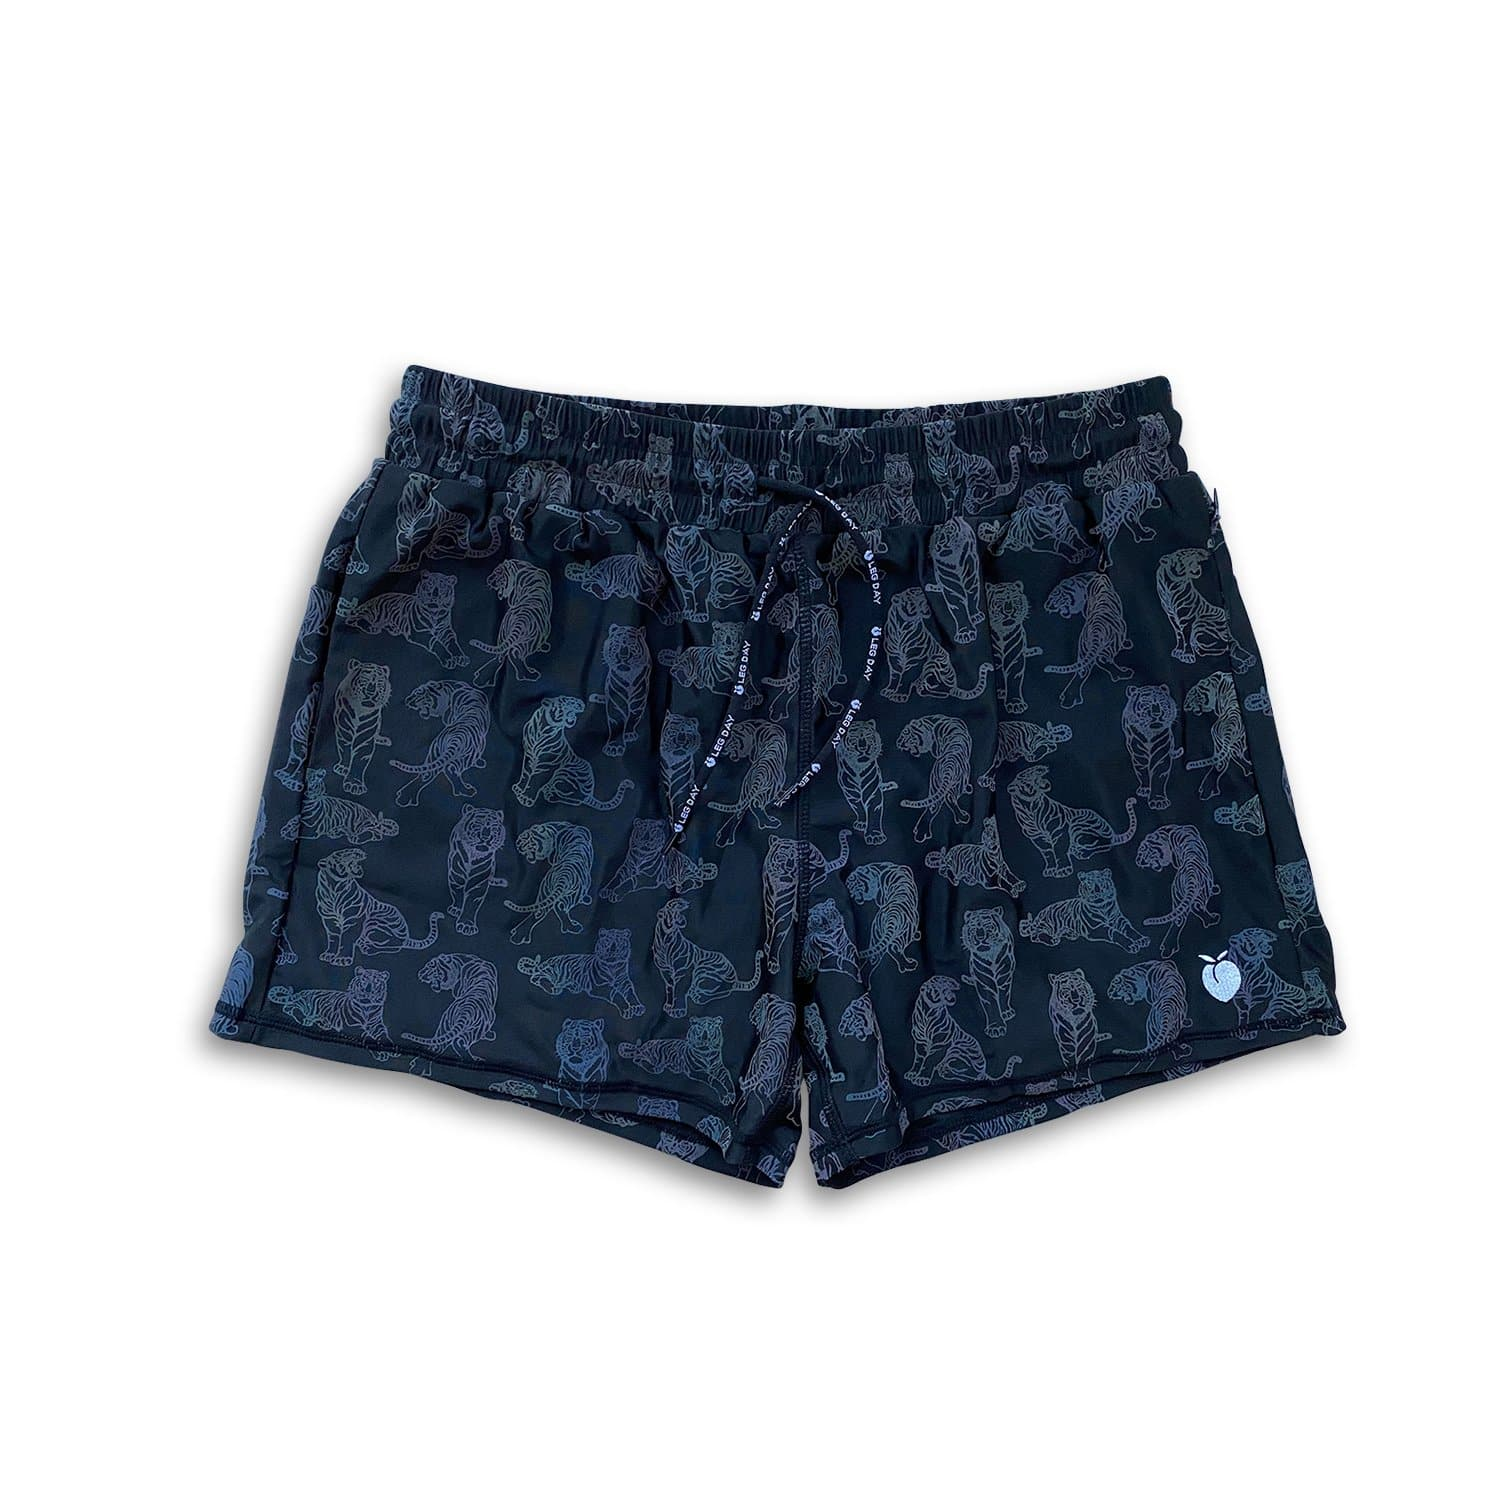 Men's Active Liner Shorts 2.0 - TIGER Reflective